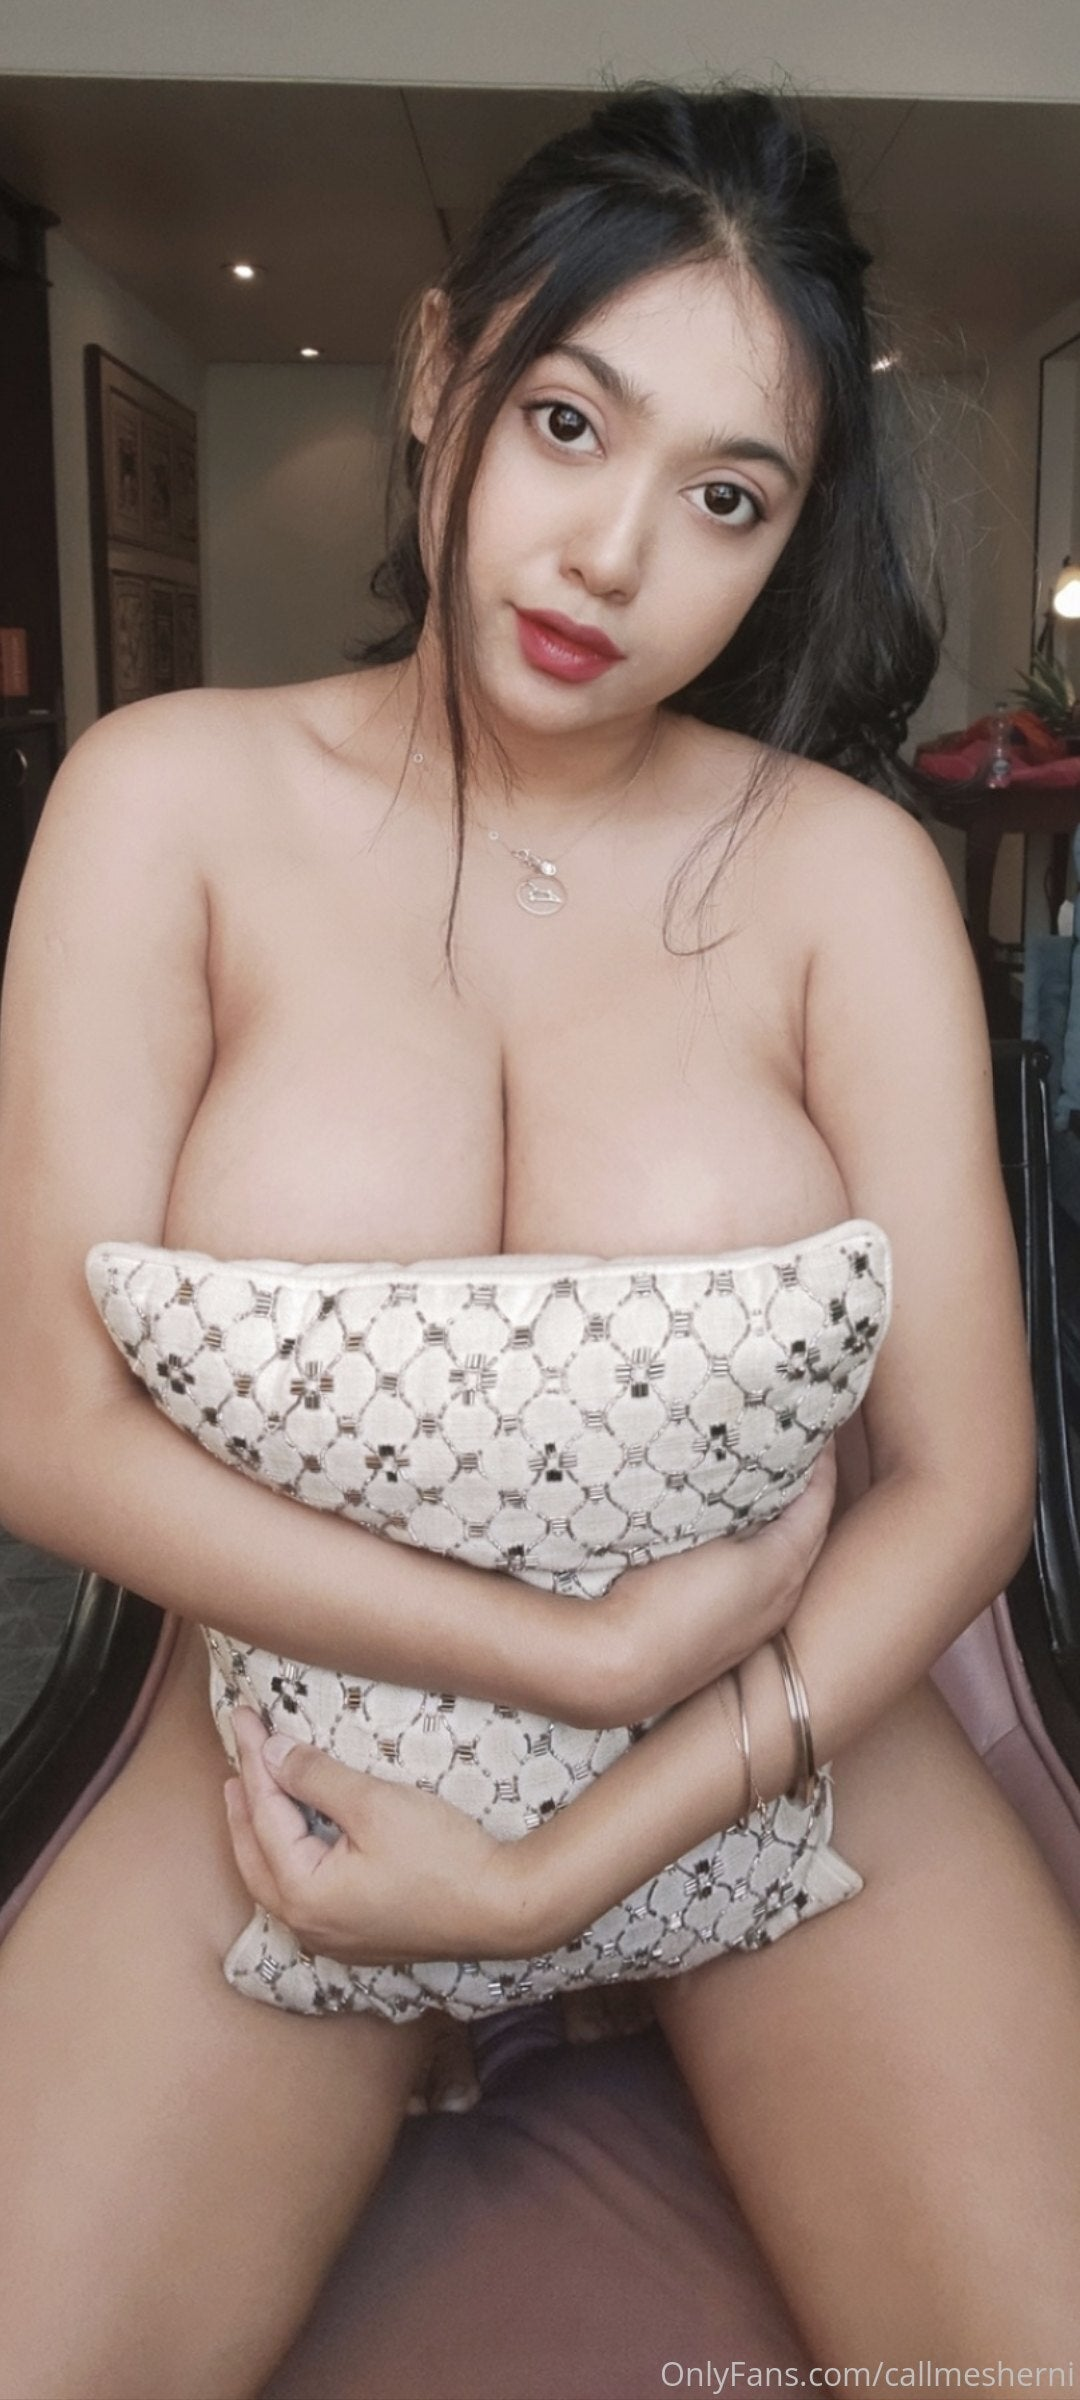 Collagr girl , tv actress, new models service provider in very low cost